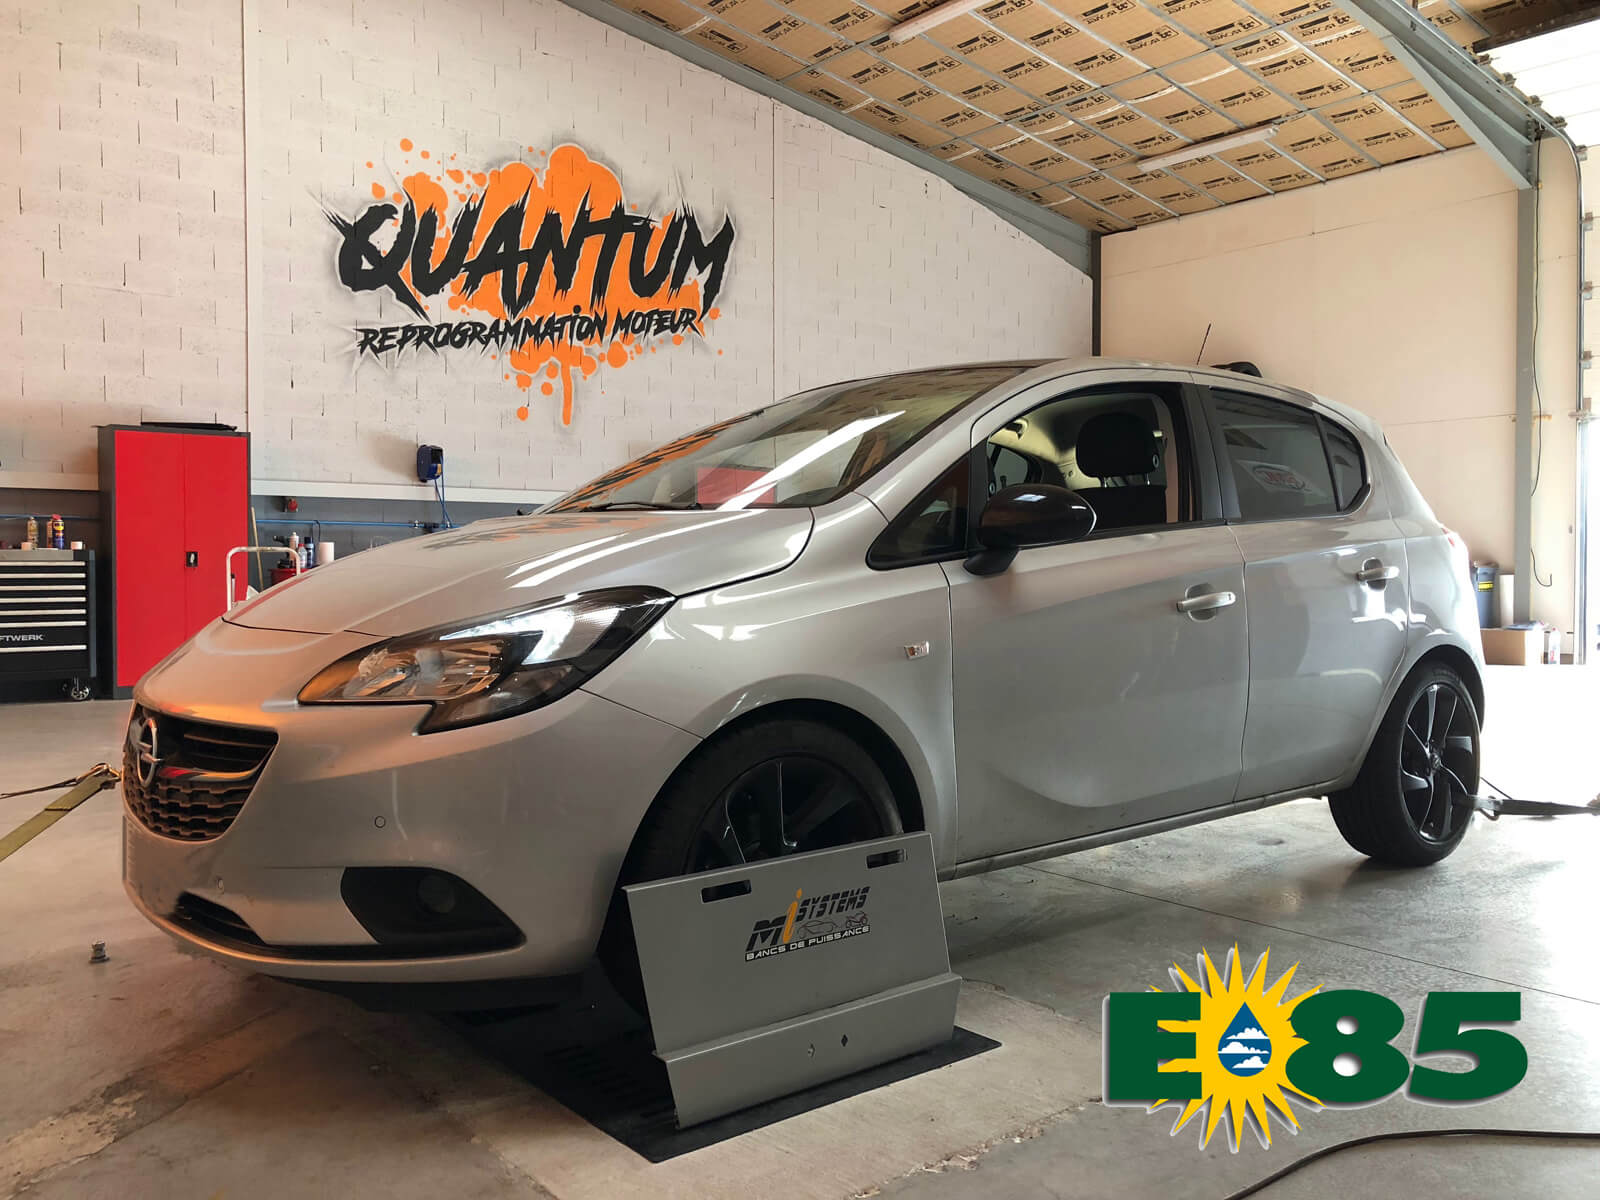 Corsa E85 flexfuel, quantum tuning france